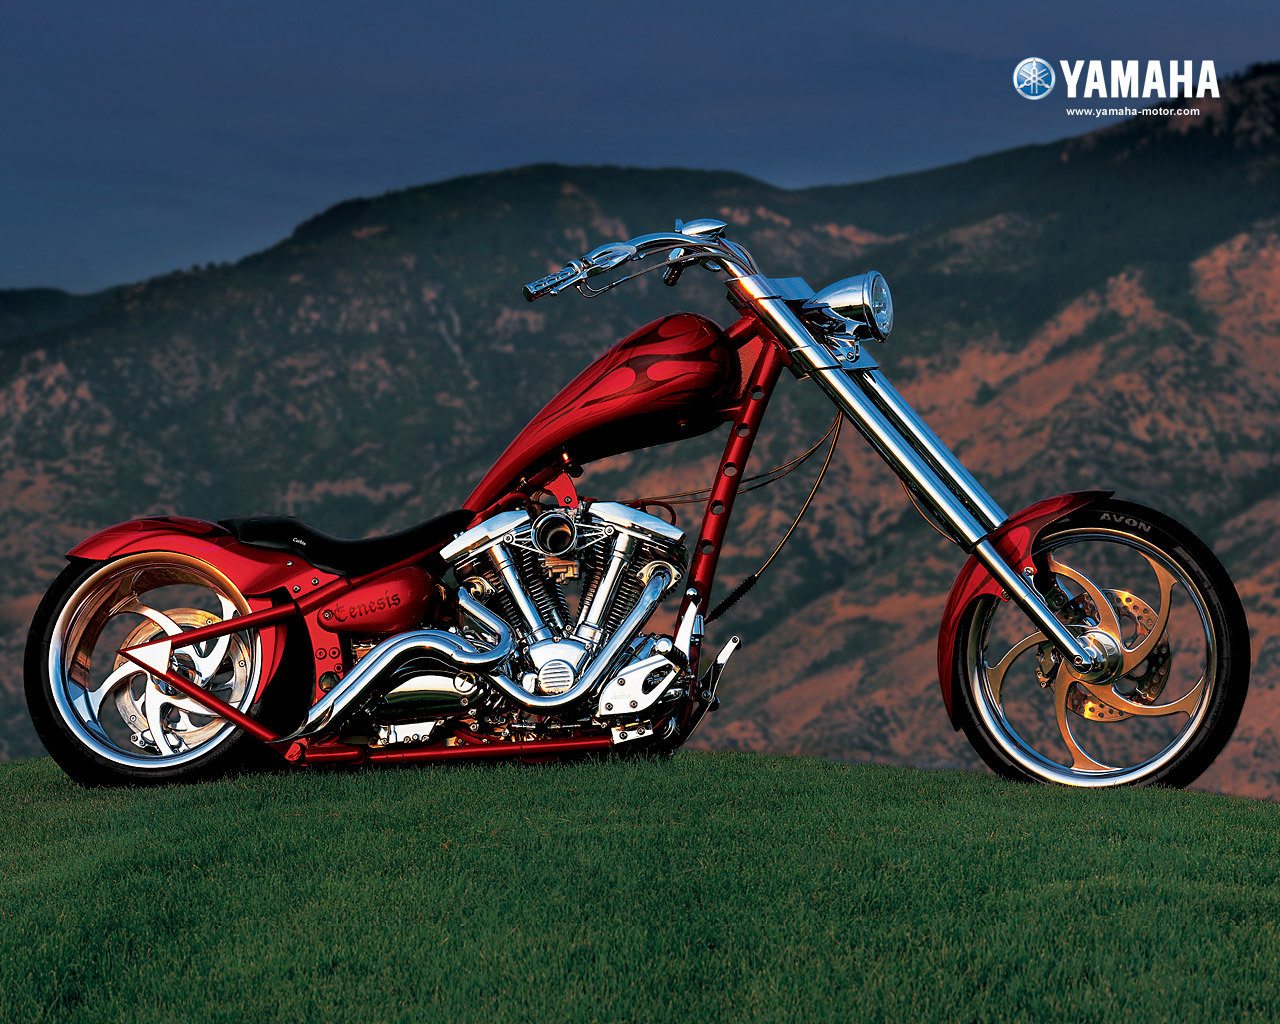 Yamaha Chopper Motorcycle 1280 x 1024 · 503 kB · jpeg